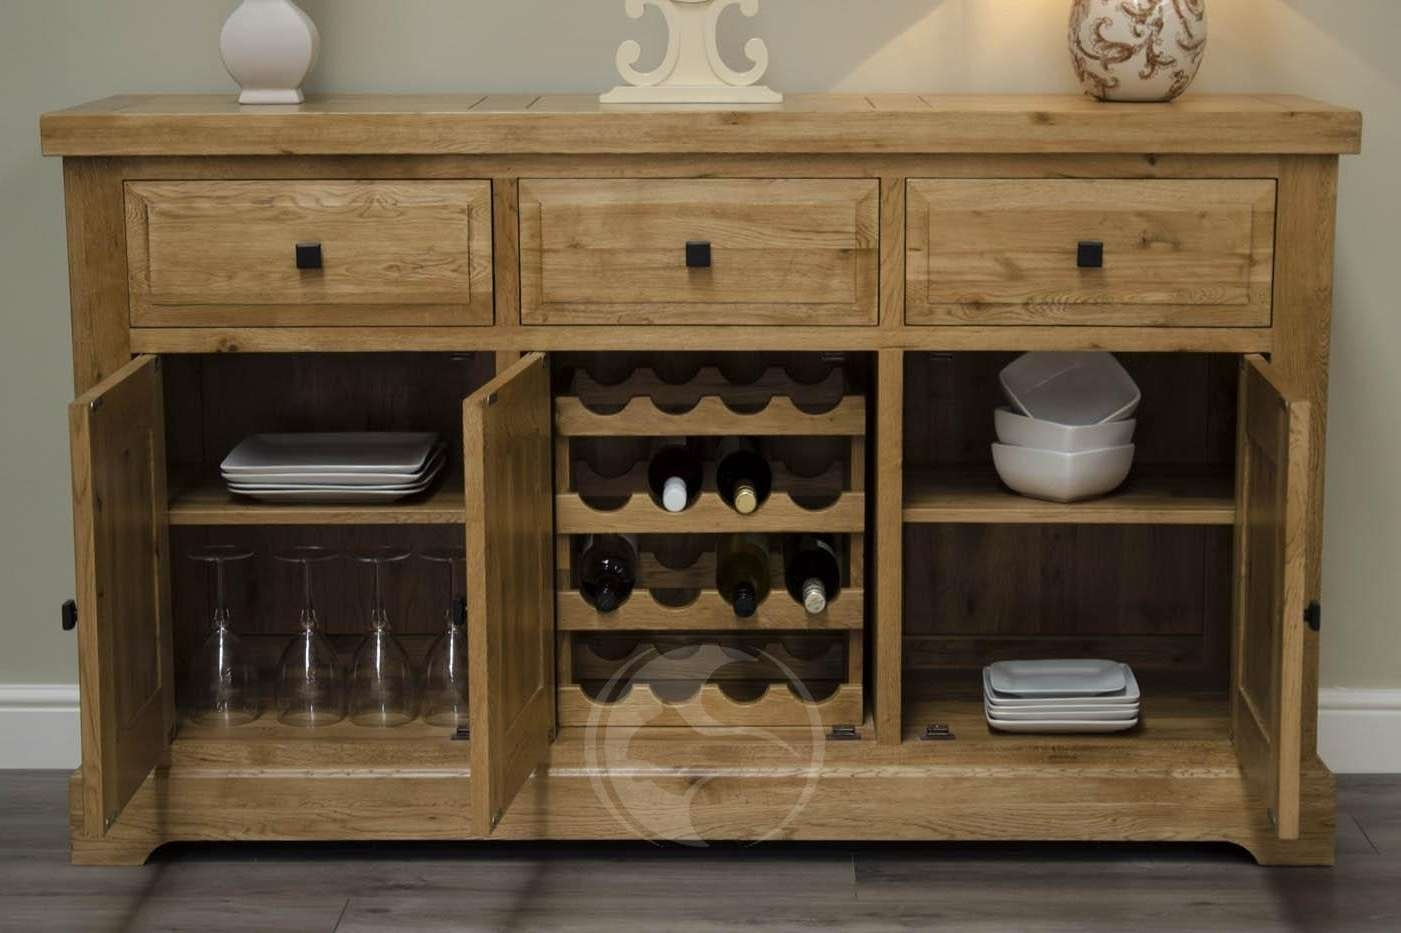 Coniston Rustic Solid Oak Large Sideboard | Oak Furniture Uk In Rustic Oak Large Sideboards (View 15 of 20)